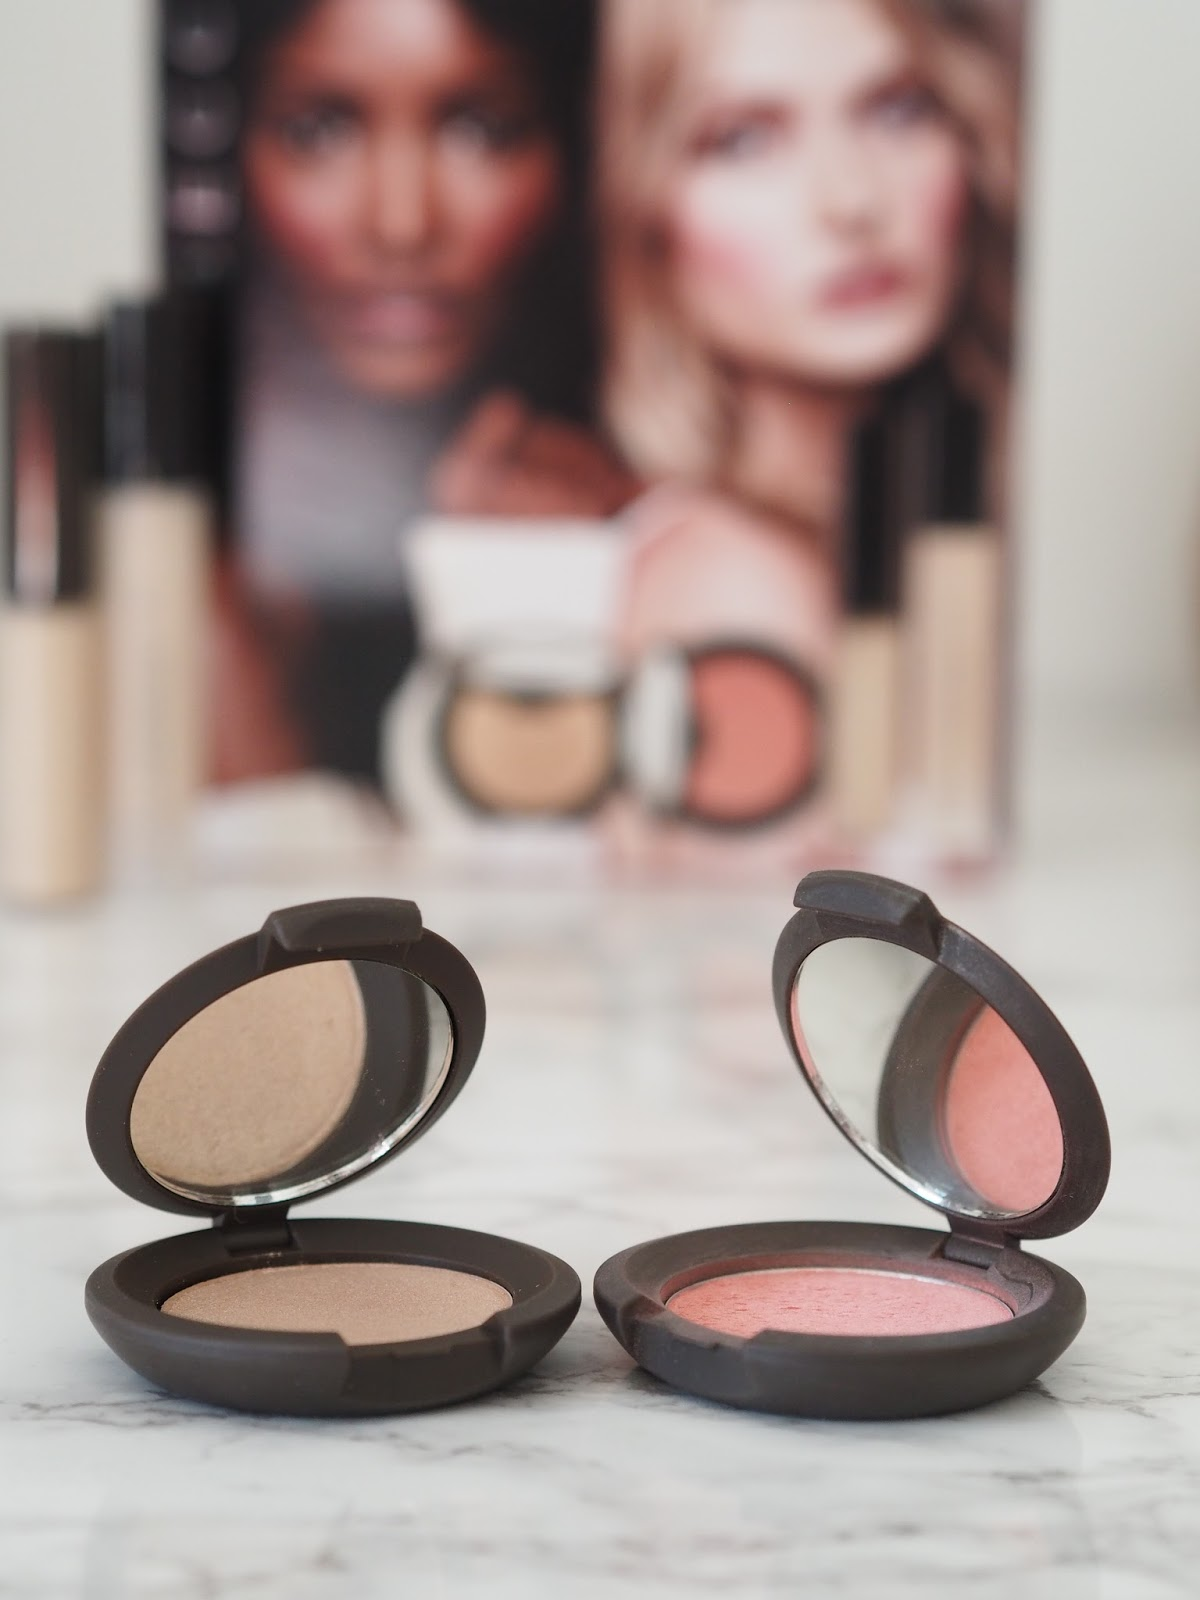 BECCA review Flowergirl blusher highlighter QVC Backlight priming filter